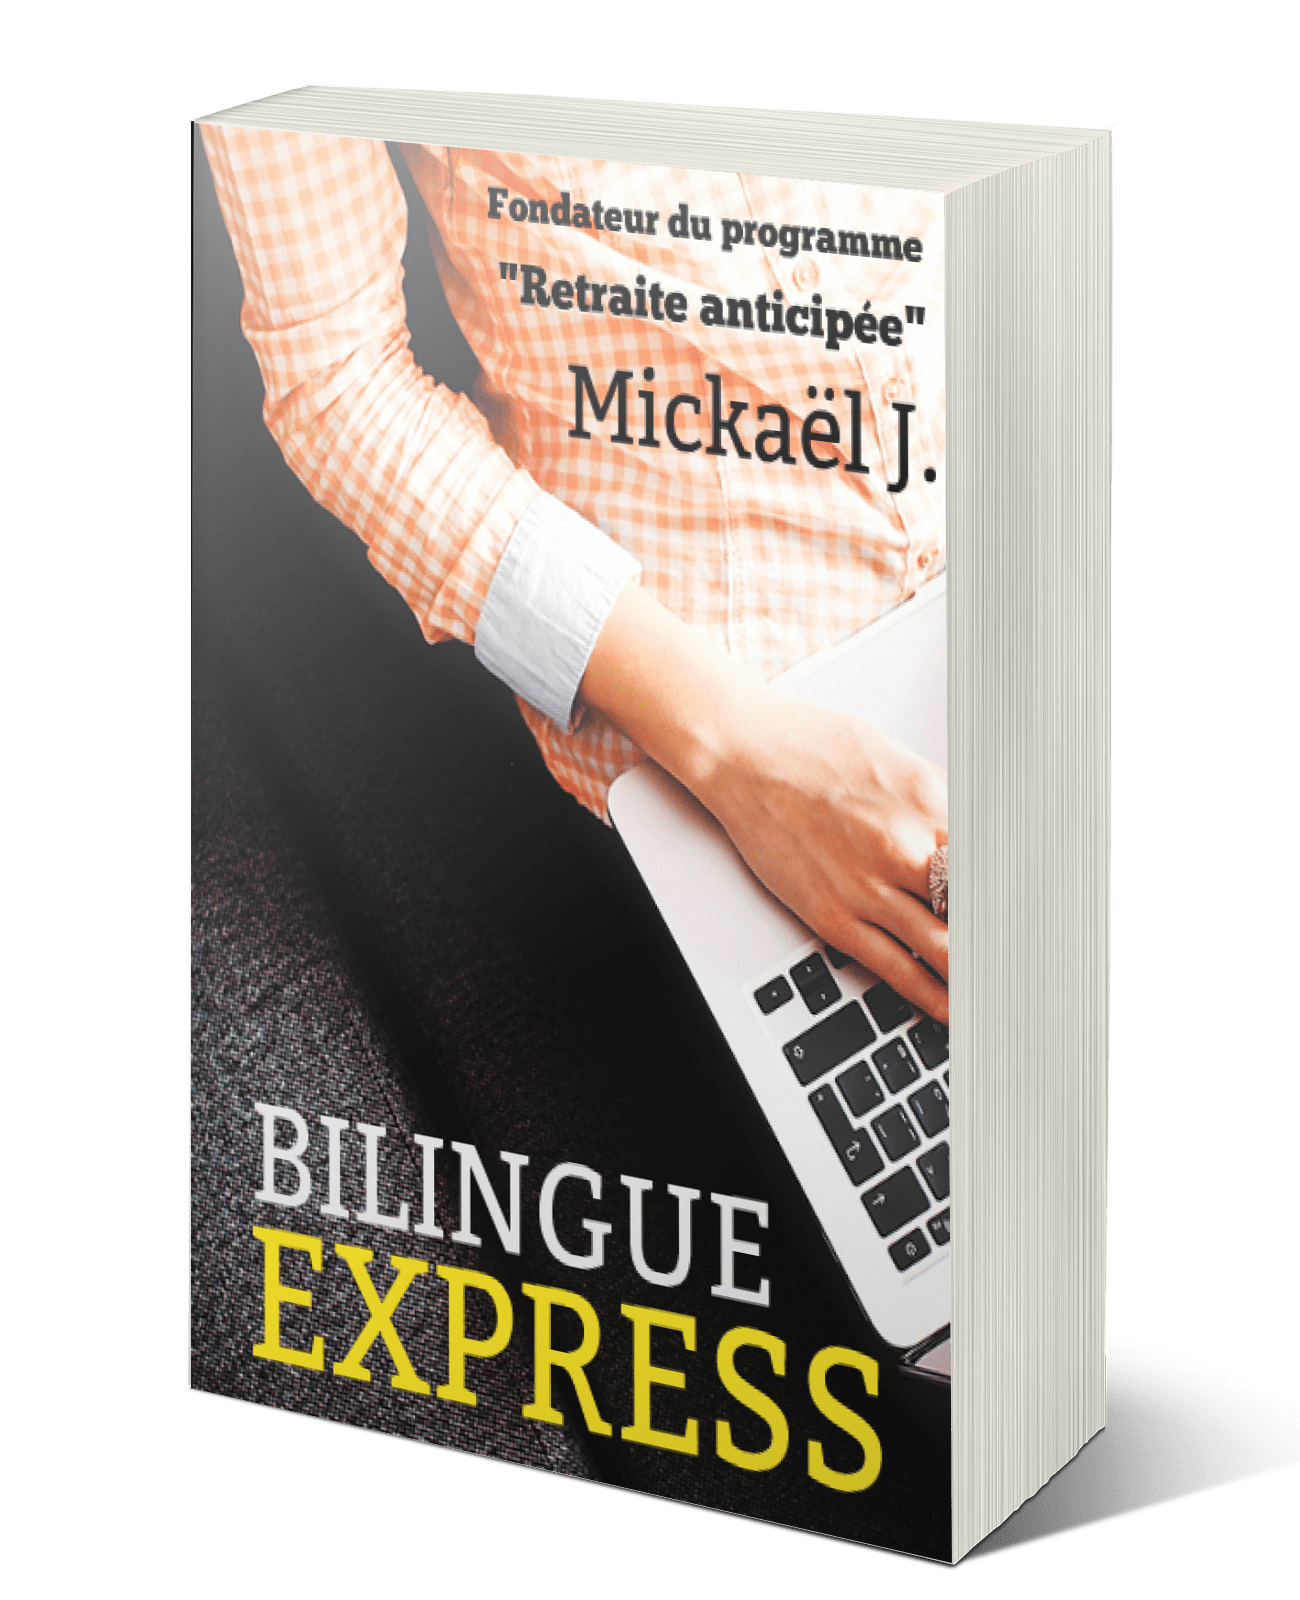 Bilingue Express